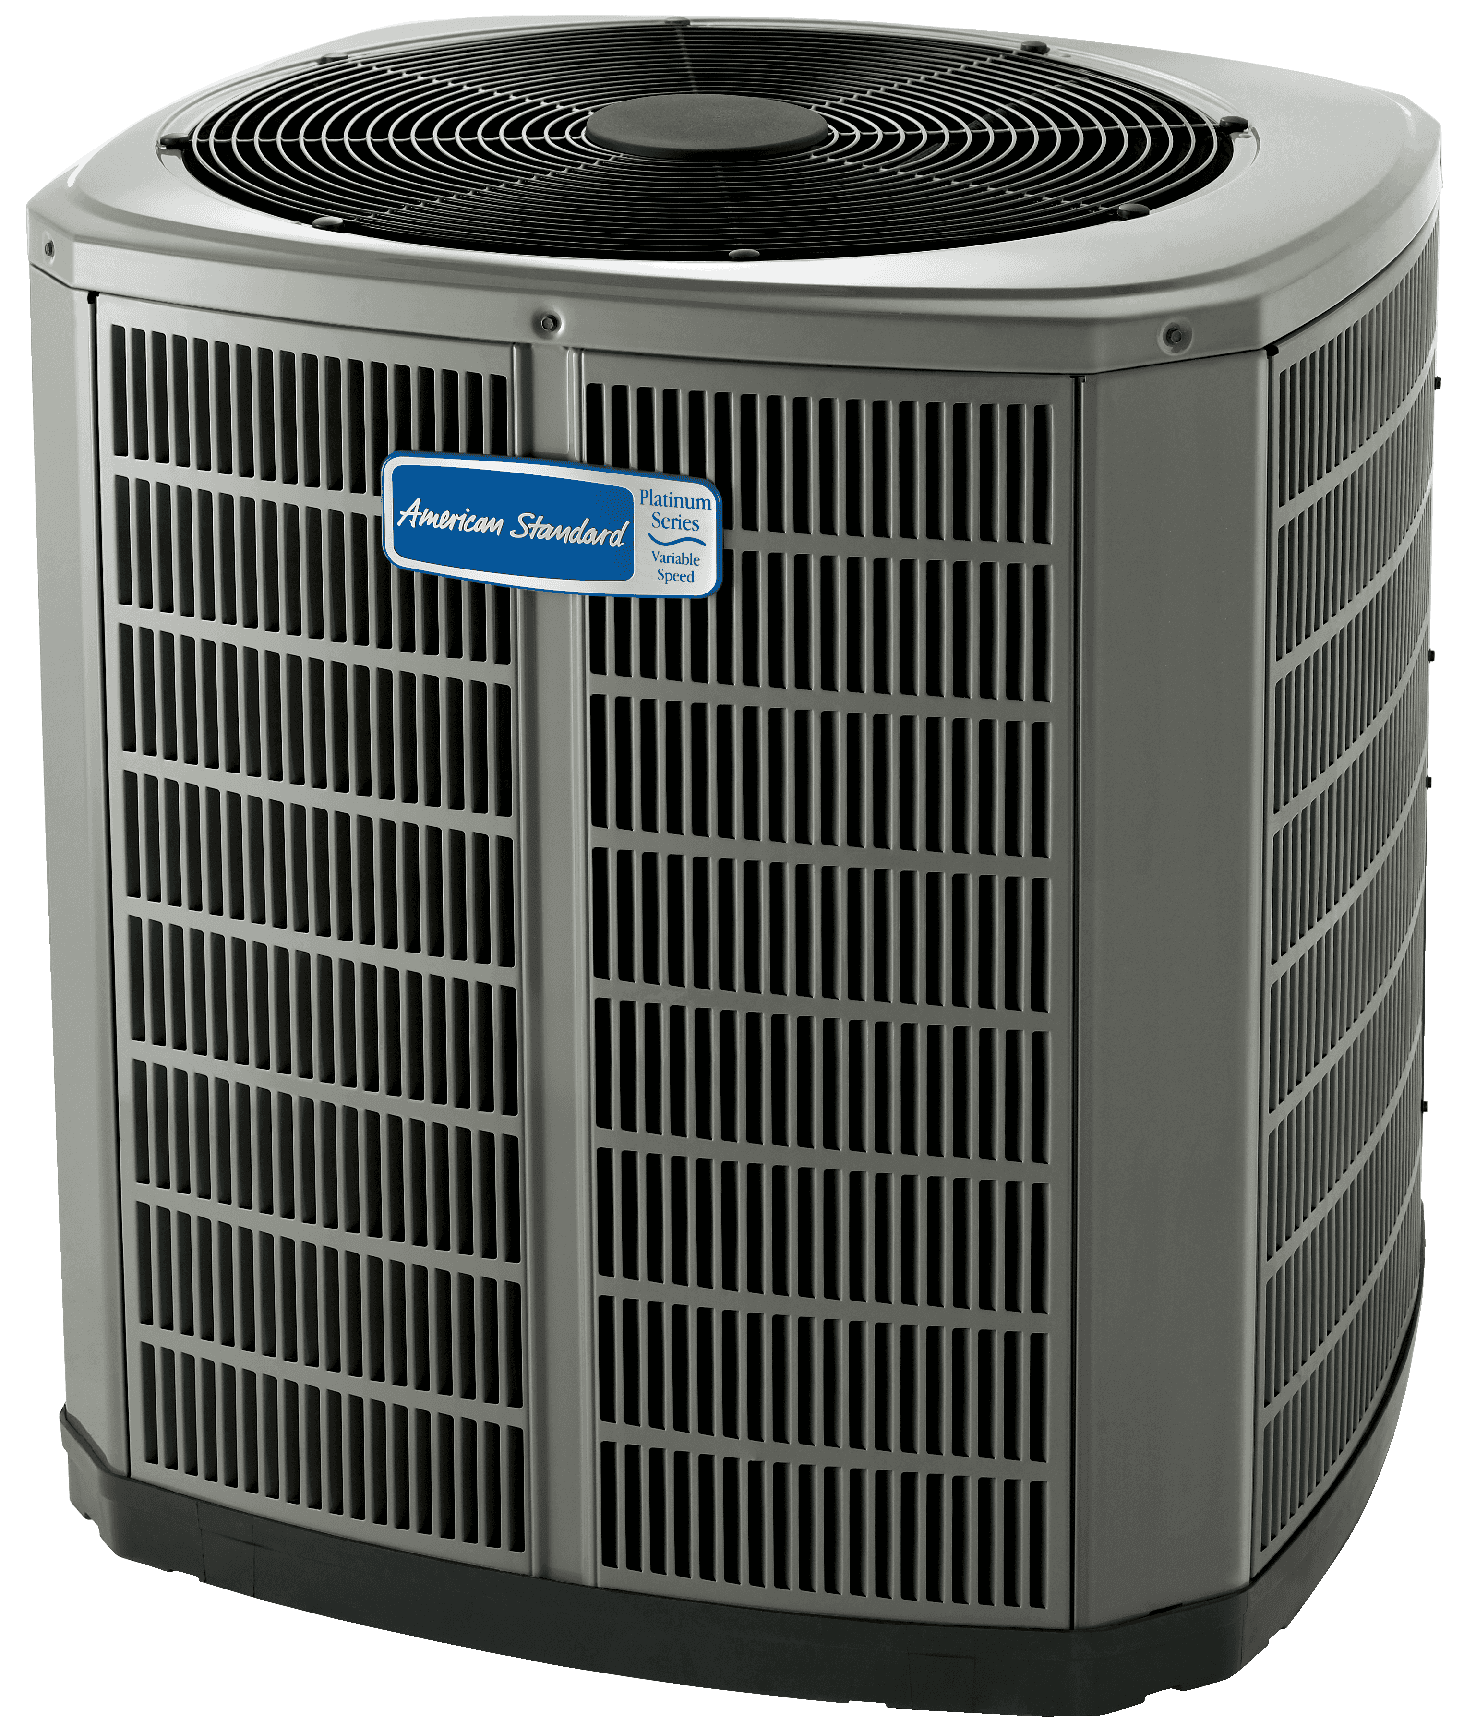 Primary Air Heating & Cooling - Best Air Conditioning Service!